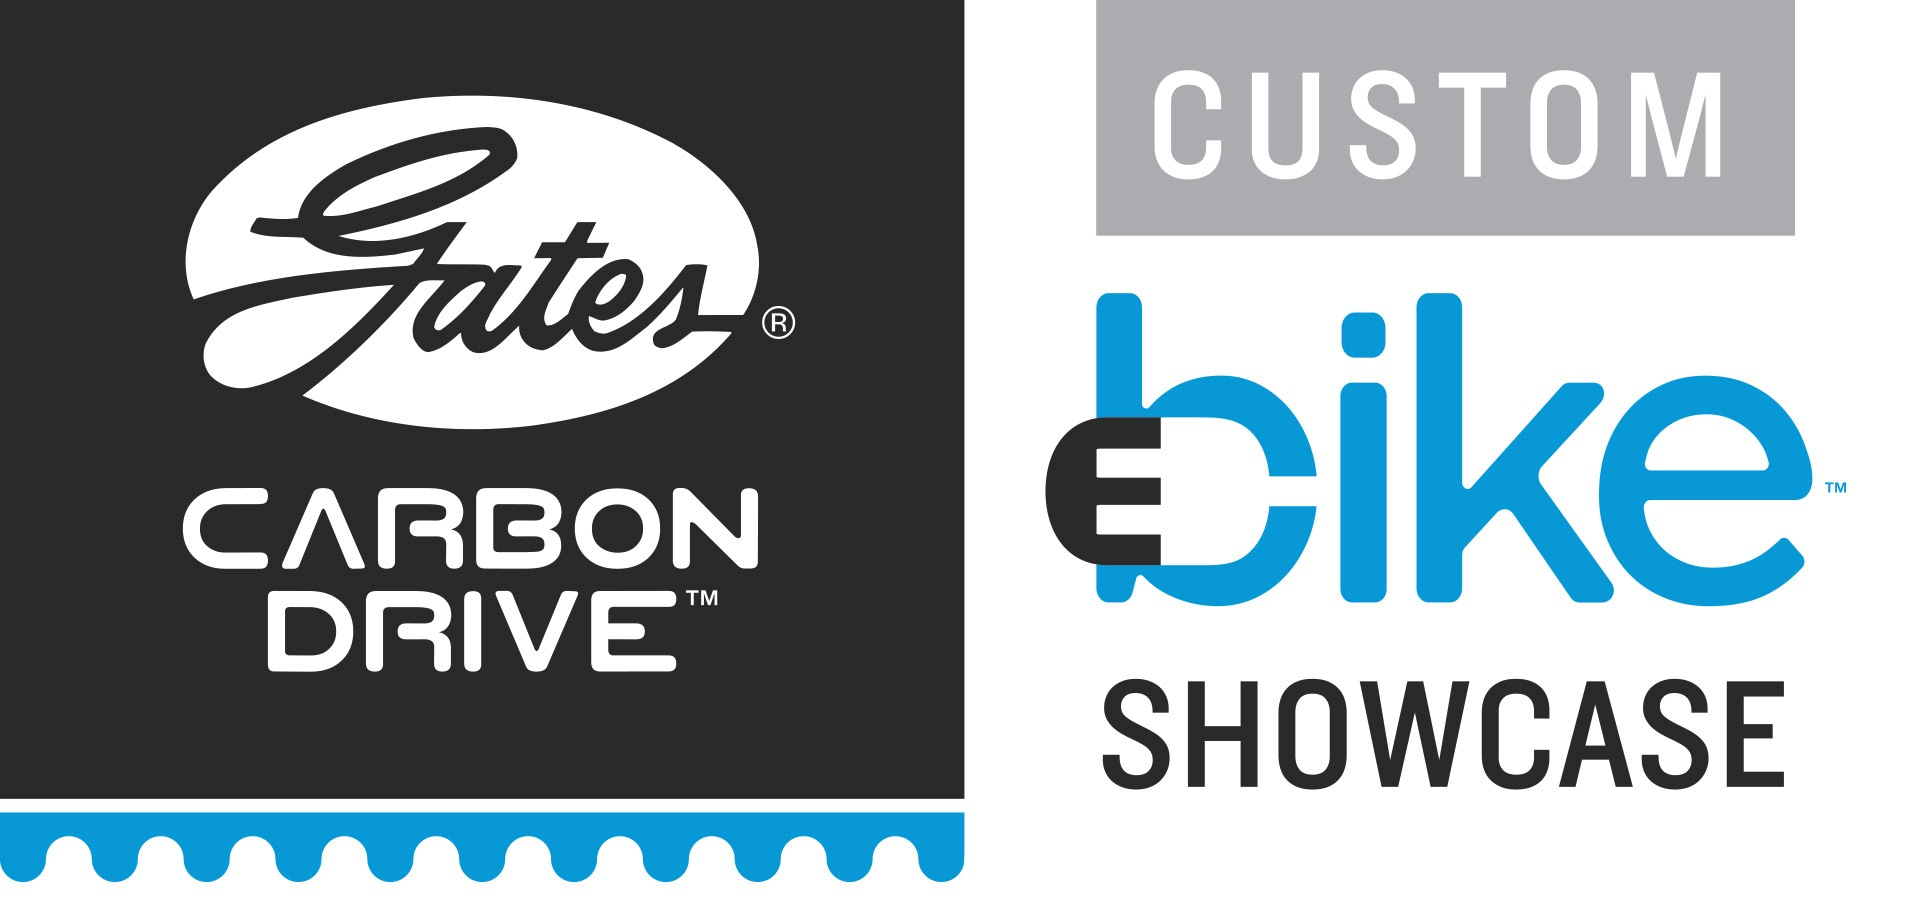 GATES eBike Showcase logo